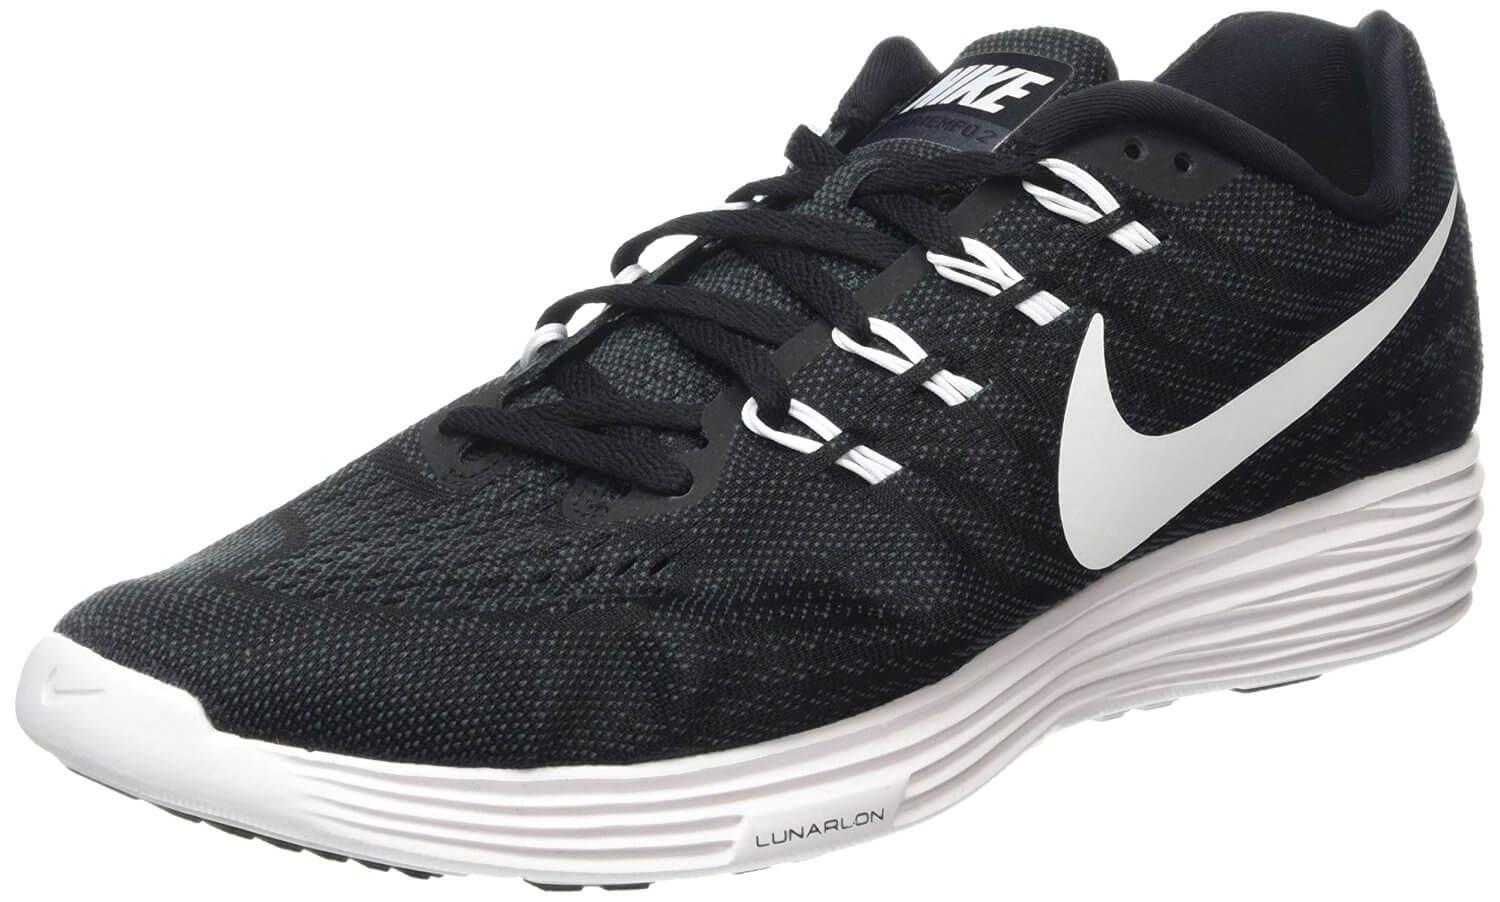 3d6ccda7c278 The Nike LunarTempo 2 made several improvements from the previous model.